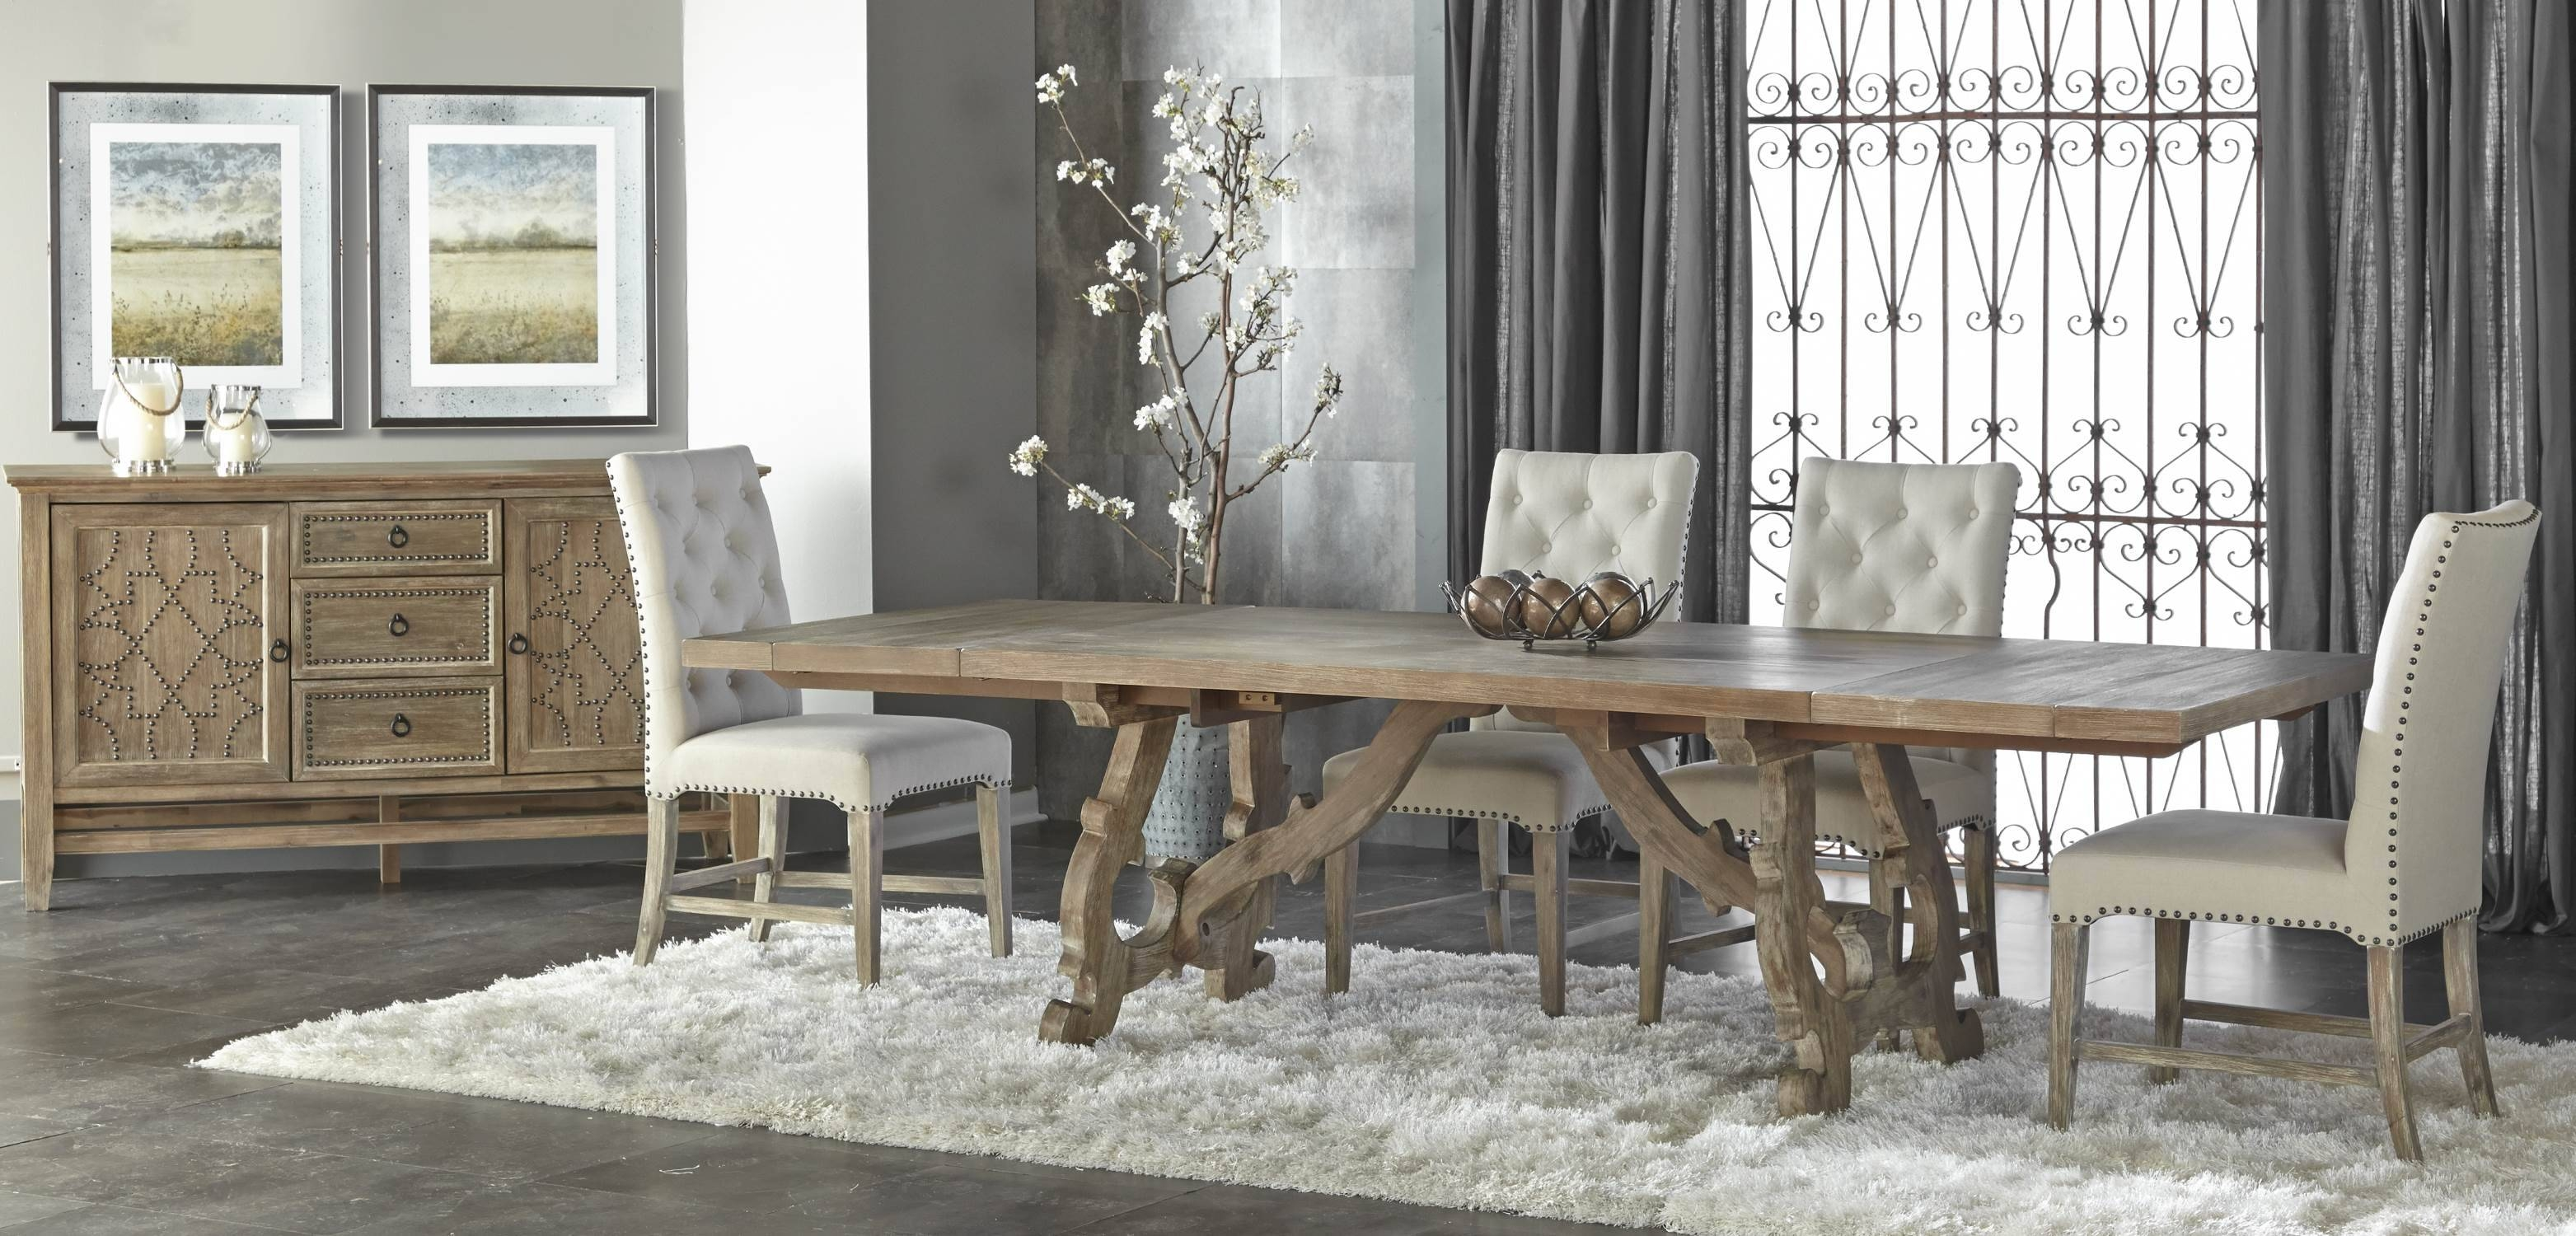 Braxton Sideboardorient Express With Regard To Latest Dining Room Sets With Sideboards (#2 of 15)